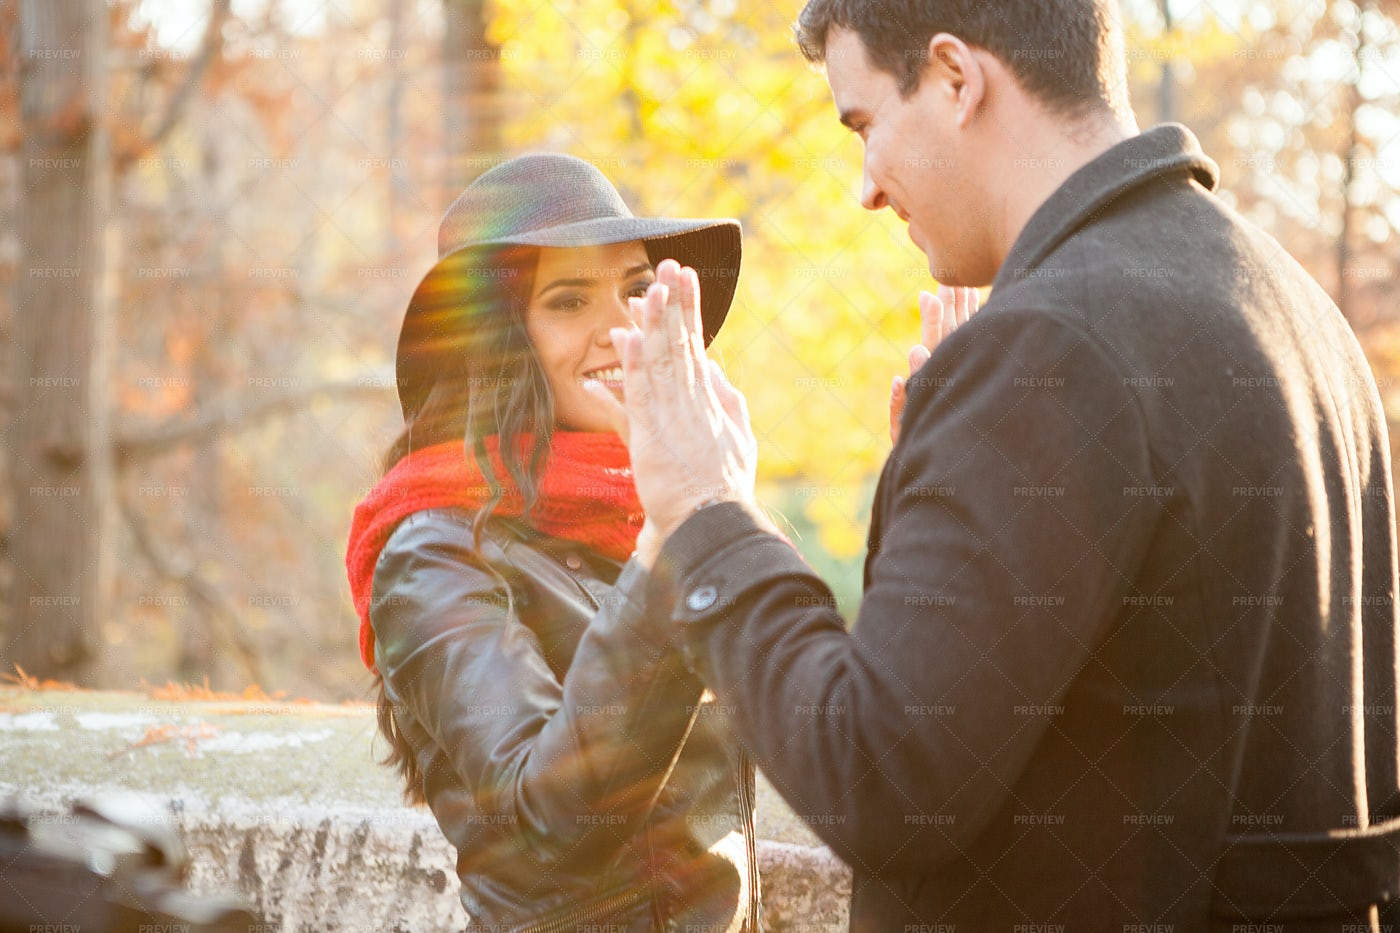 Holding Hands In The Park: Stock Photos